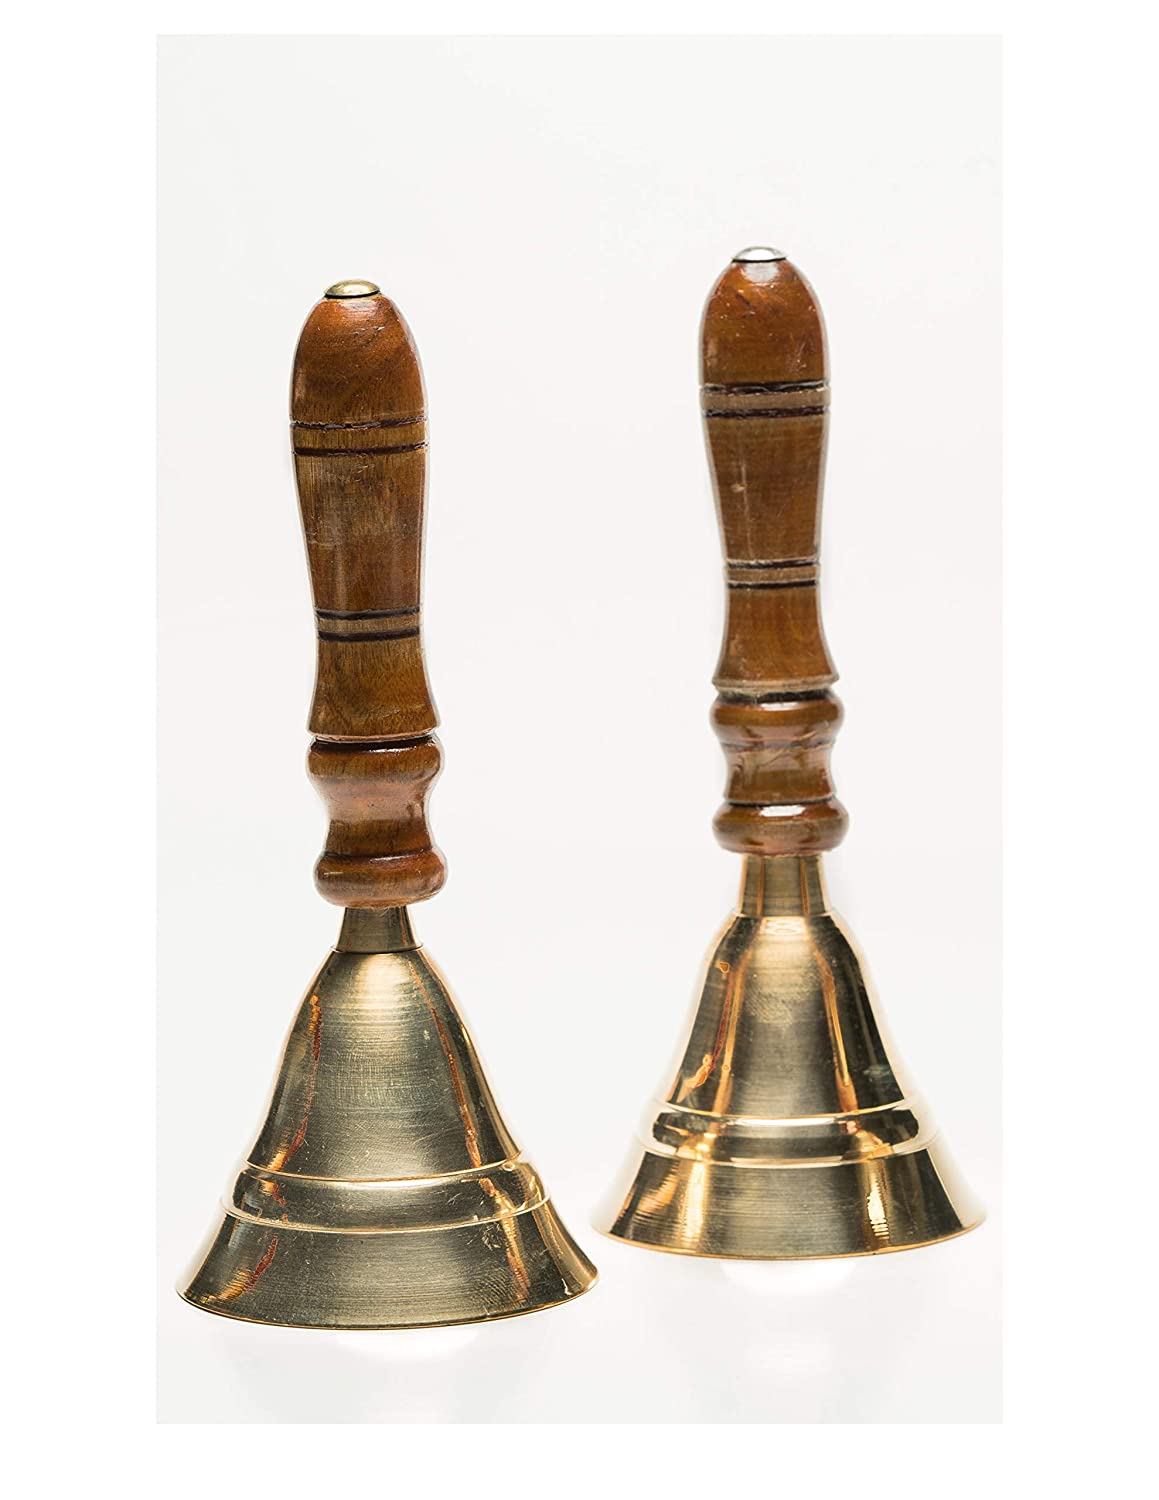 Two Hand Held Service School Butler Dinner Call Bells ~ Polished Brass With Wooden Handle New Age Imports Inc.